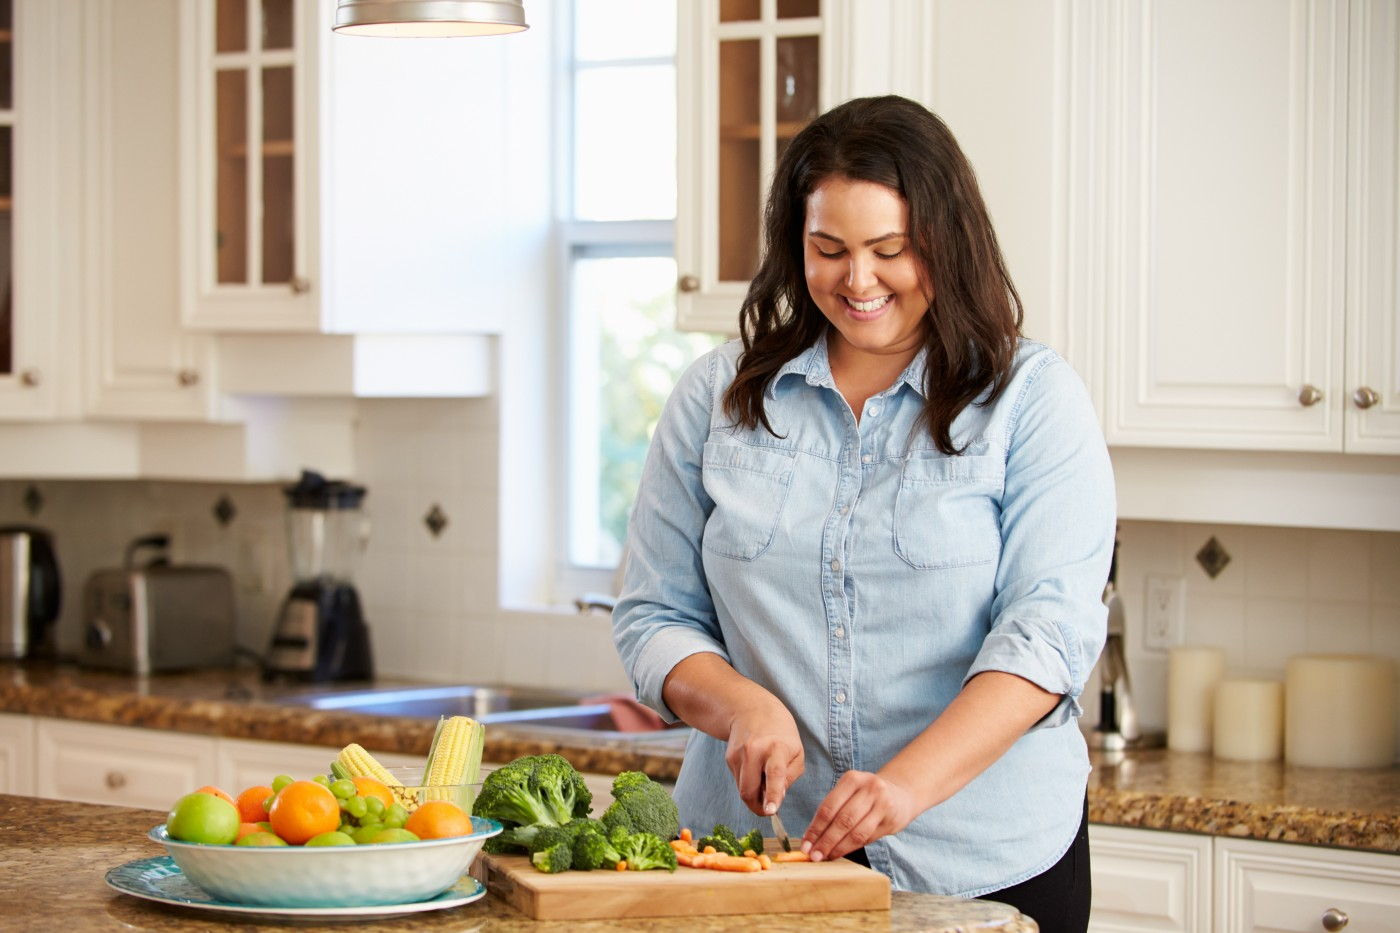 Having Food Visible Throughout the House and Low Self-esteem Associated With Obesity